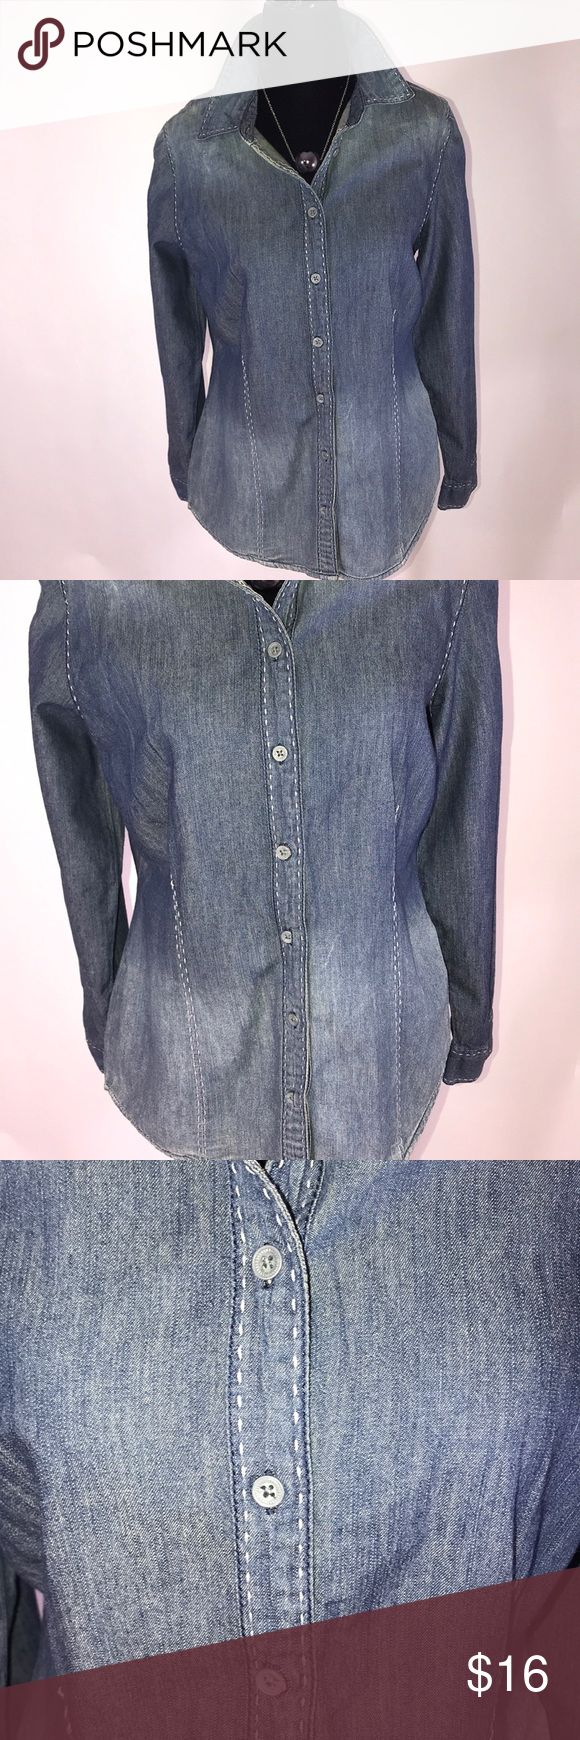 Beautiful denim inspired long sleeved shirt Beautiful denim inspired long sleeved shirt  With detailed stitching  Length 25 1/2 Sleeves 27 Pit to pit 18' Size small Nine West Tops Button Down Shirts